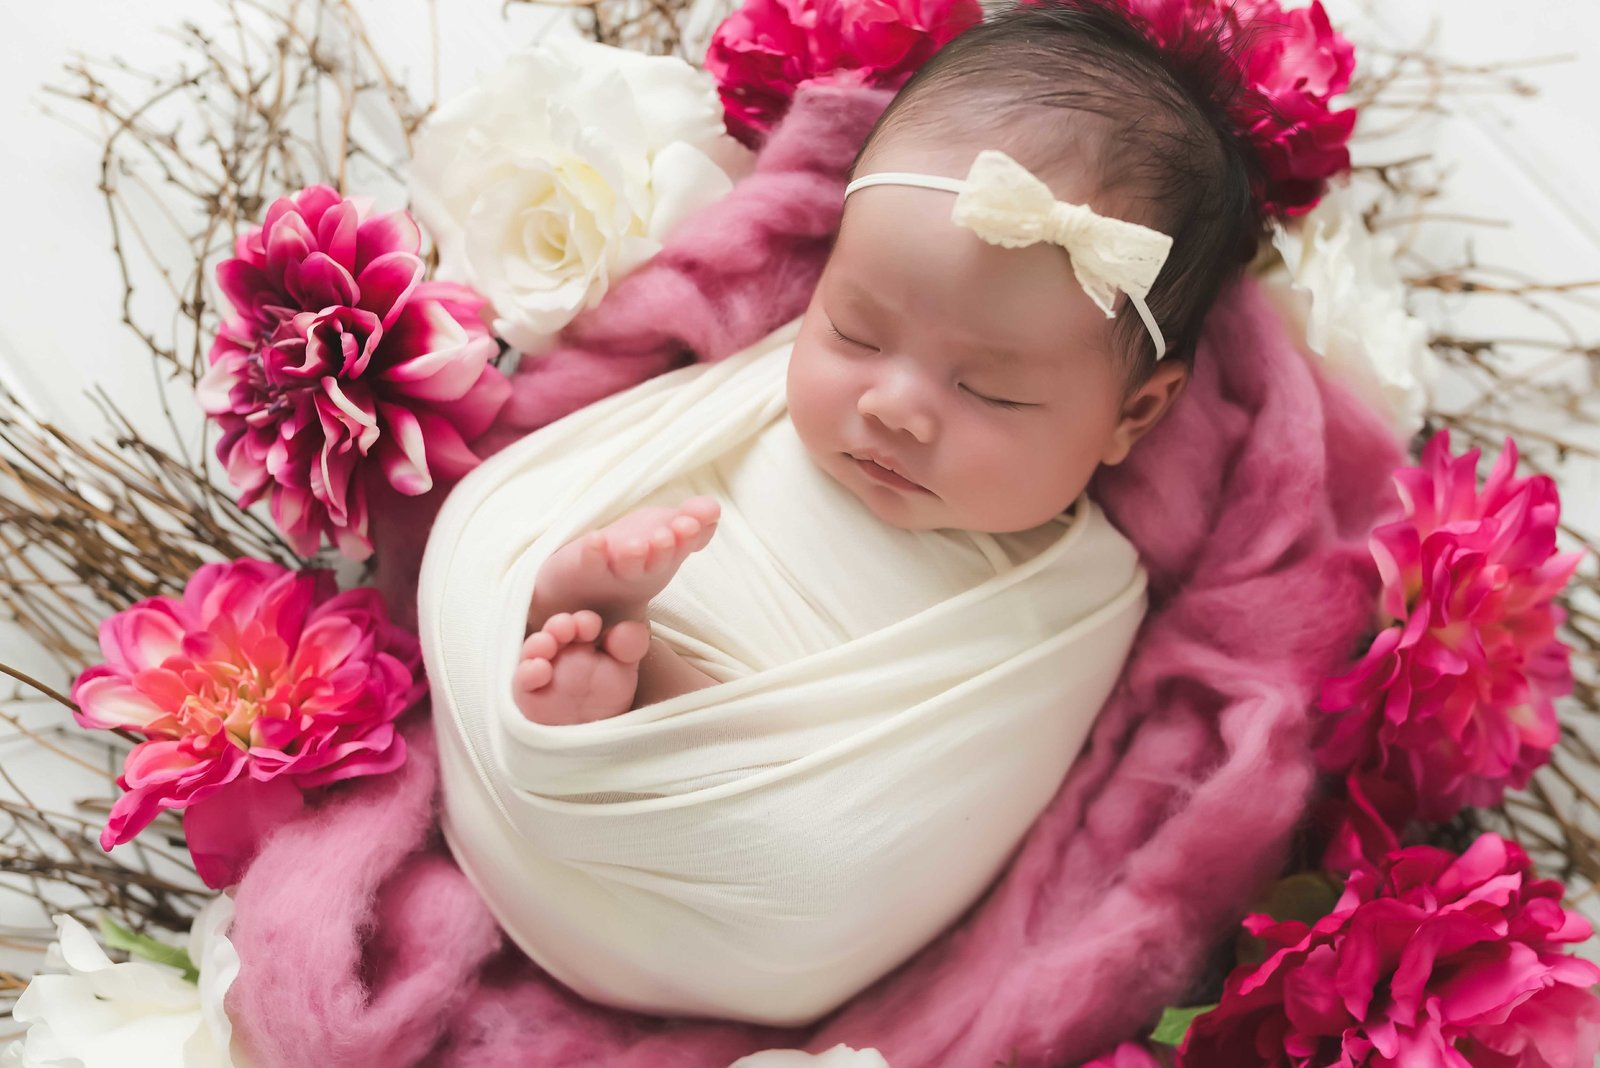 Orange-County-Newborn-Photographer-27